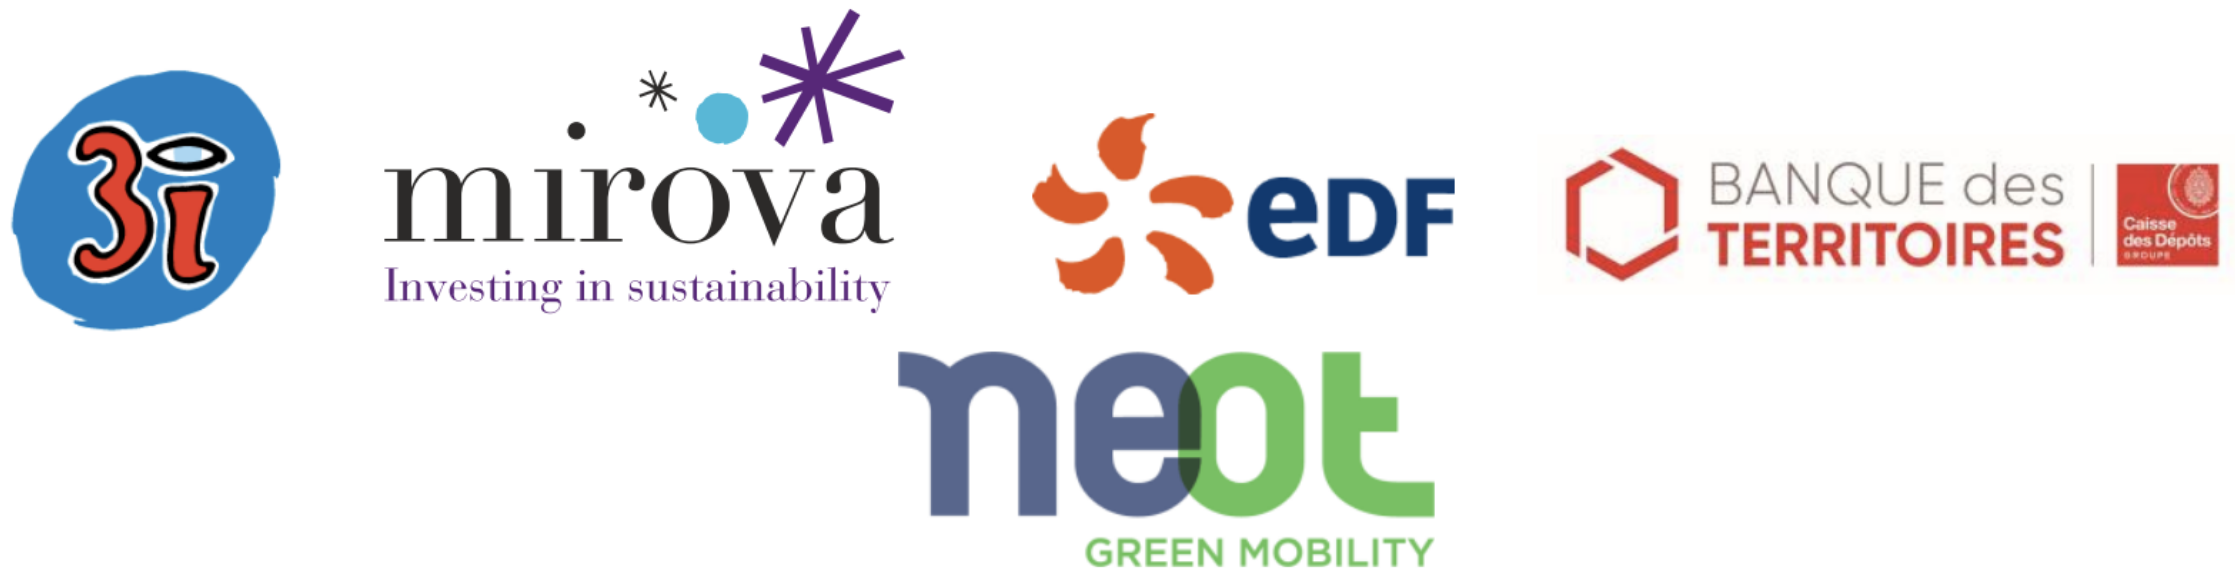 3i group neot green mobility